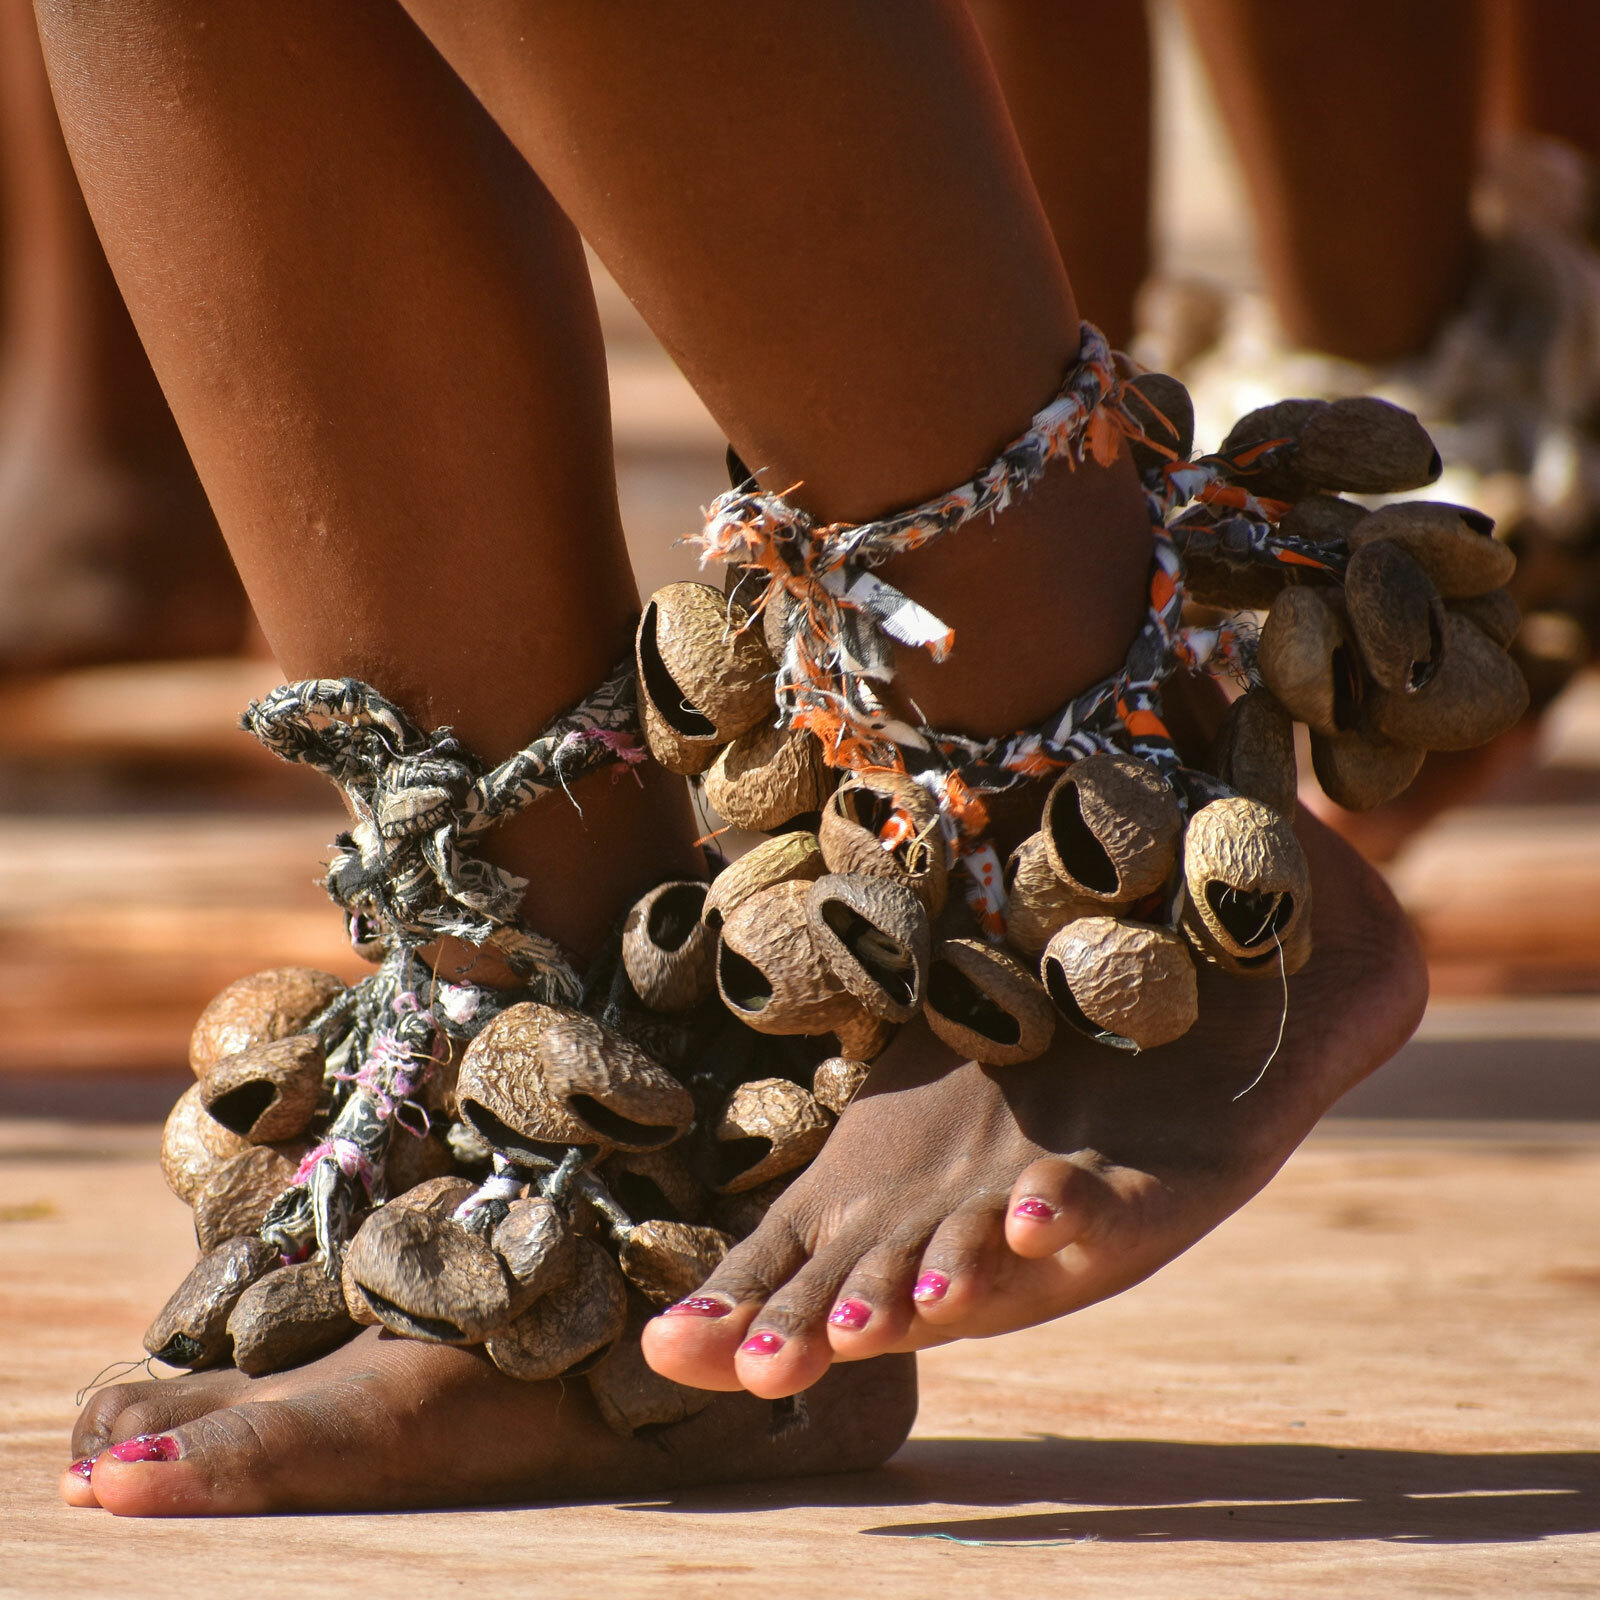 Feet adorned with decorations while dancing